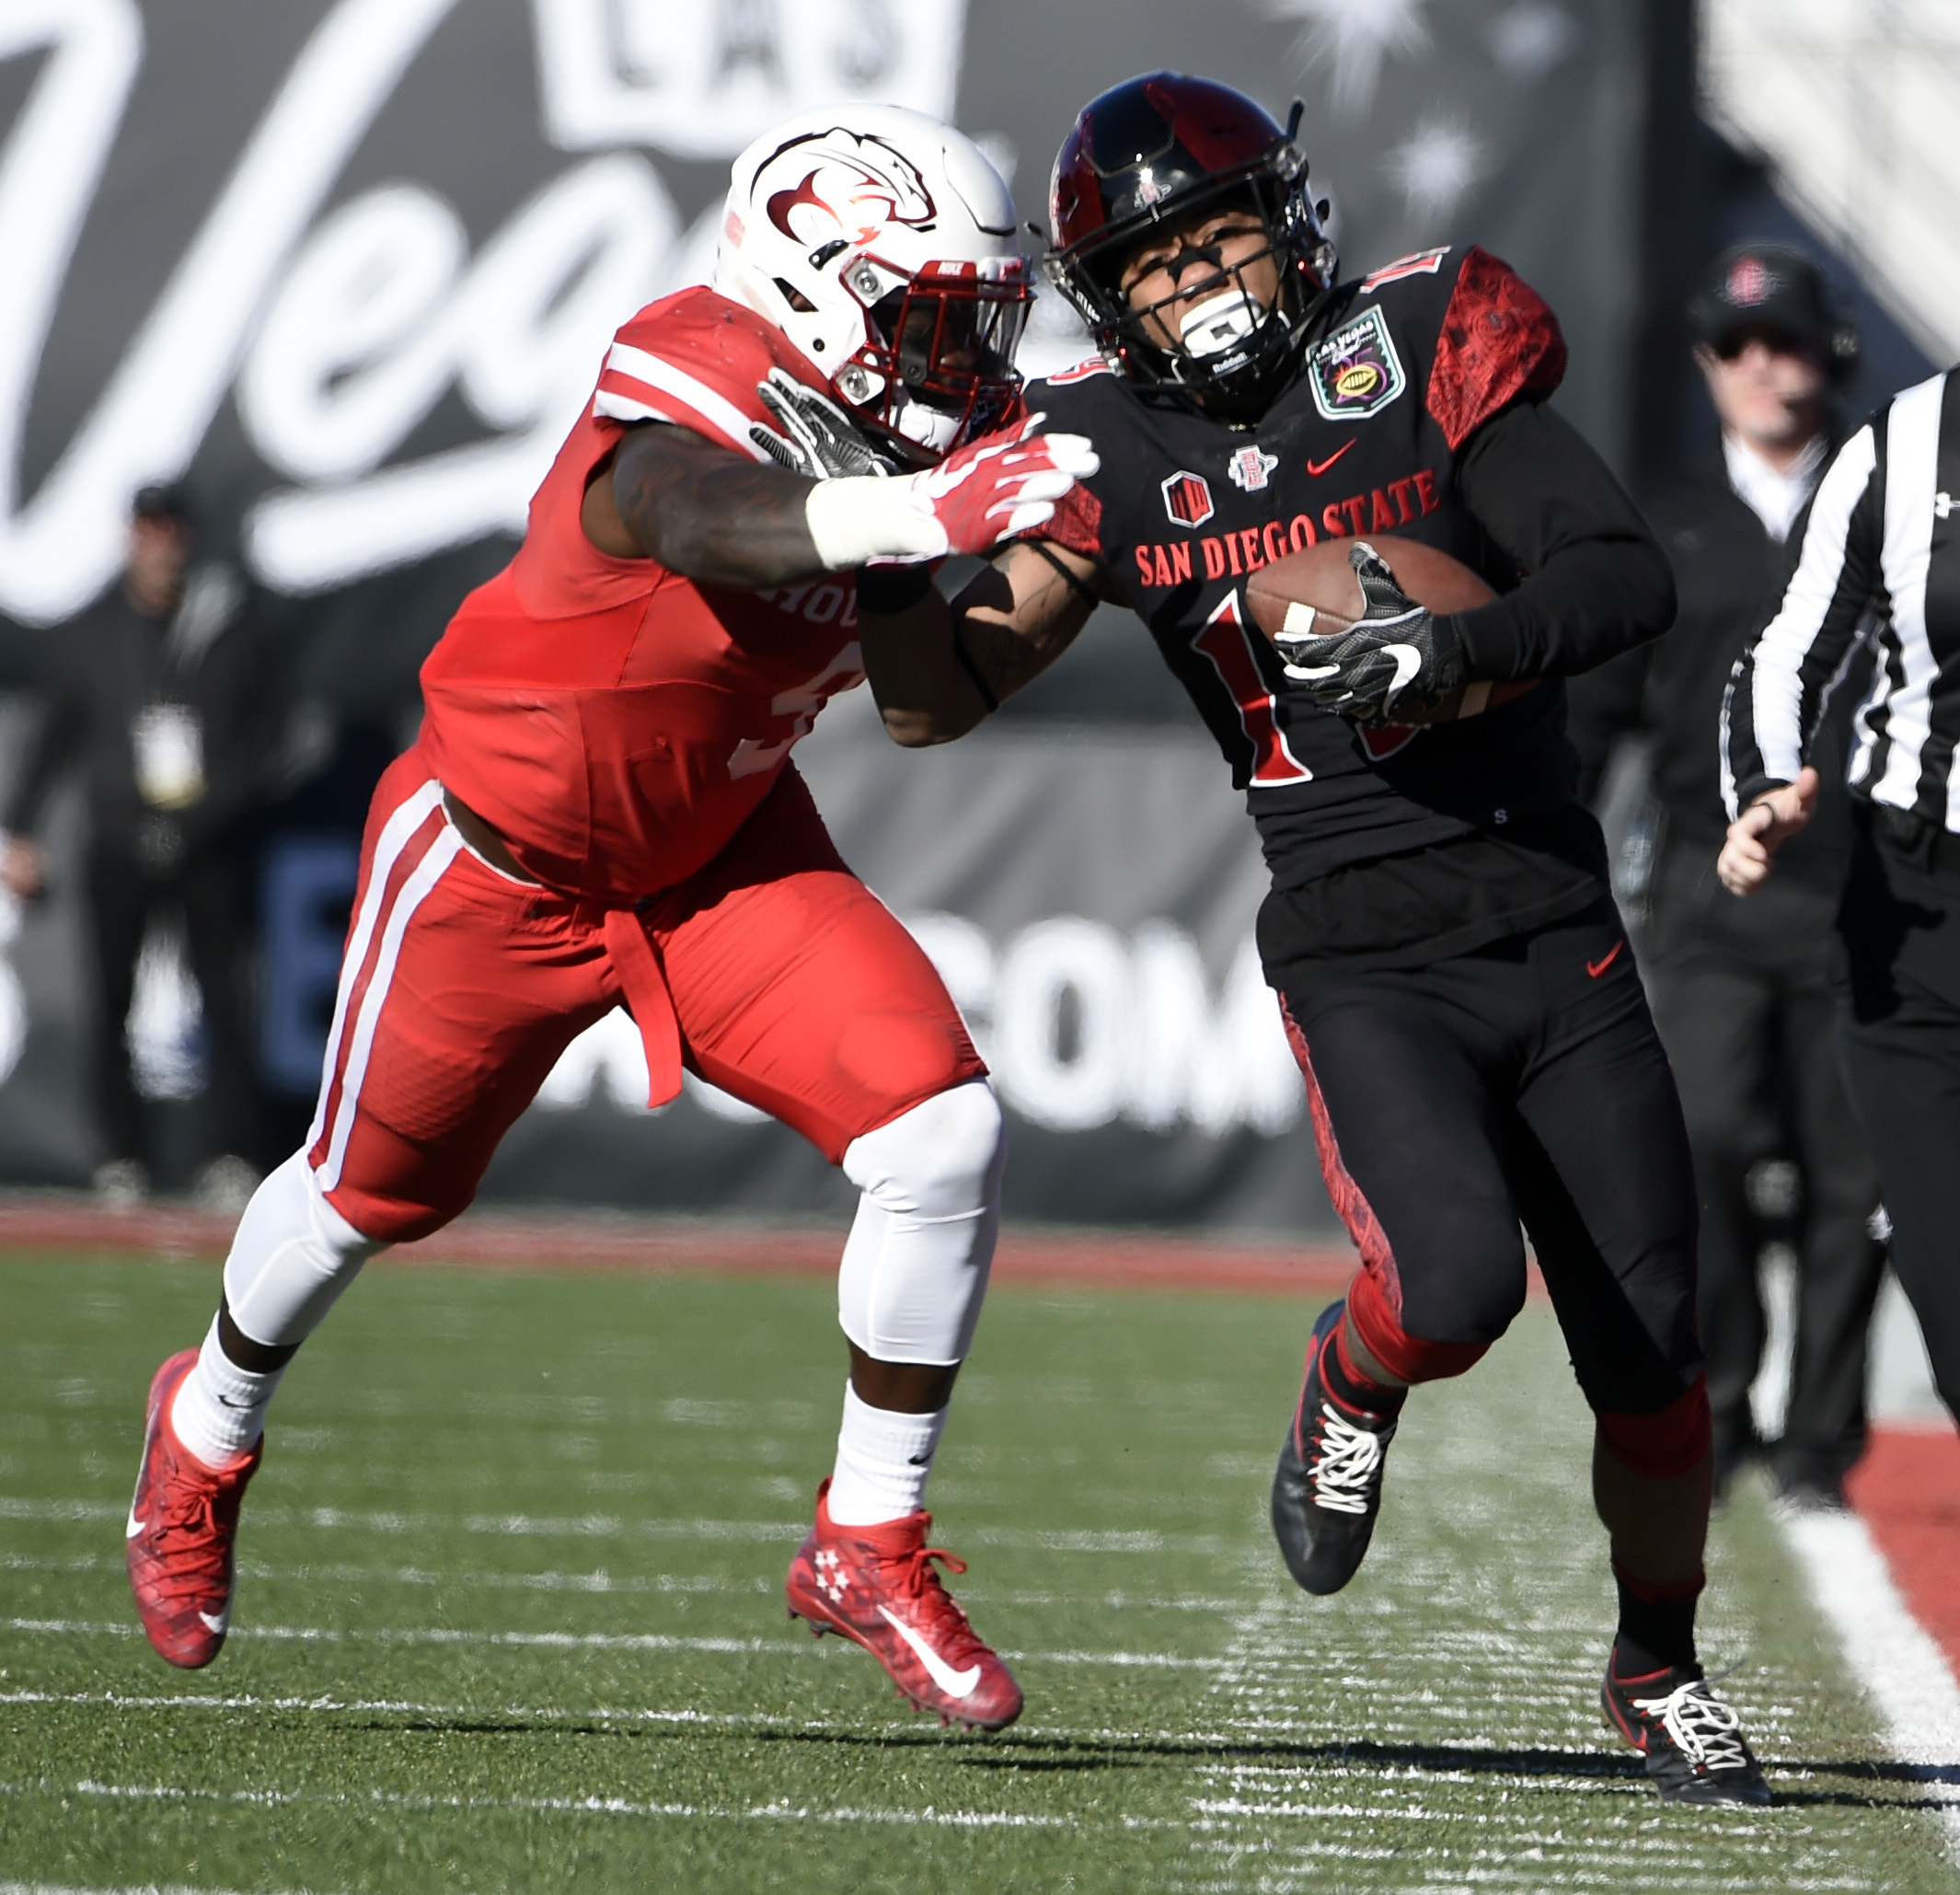 San Diego State running back Donnel Pumphrey (19) rushes against Houston linebacker Matthew Adams during the first half of the Las Vegas Bowl NCAA college football game on Saturday, Dec. 17, 2016, in Las Vegas. (AP Photo/David Becker)